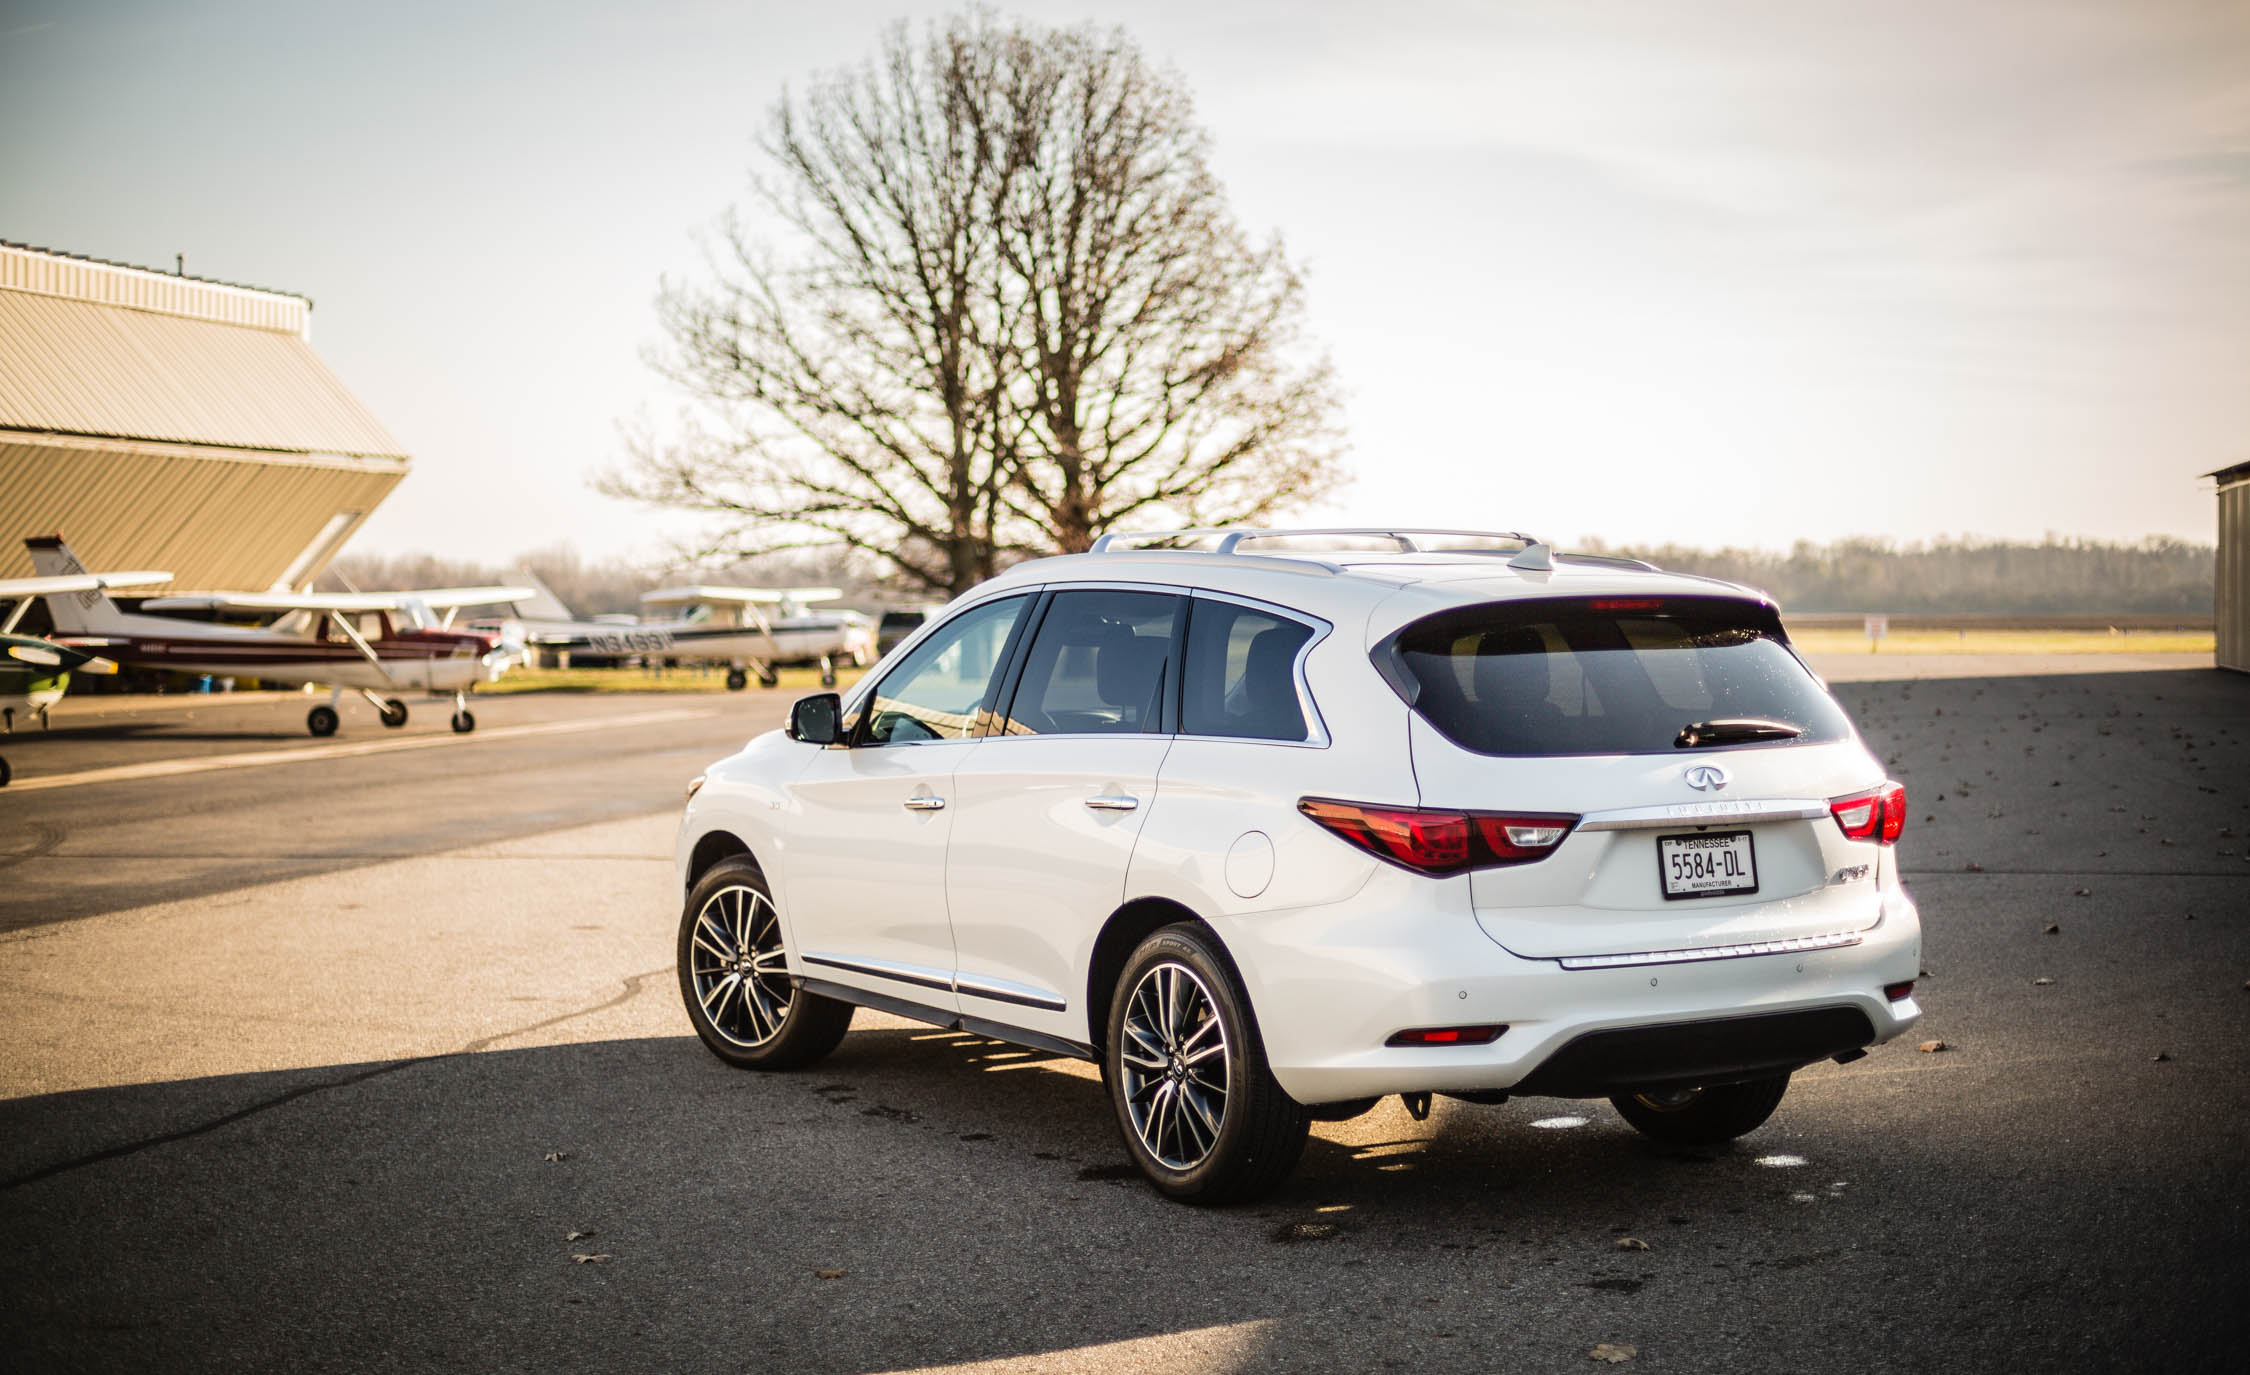 2017 Infiniti Qx60 White Exterior Side And Rear (View 12 of 12)